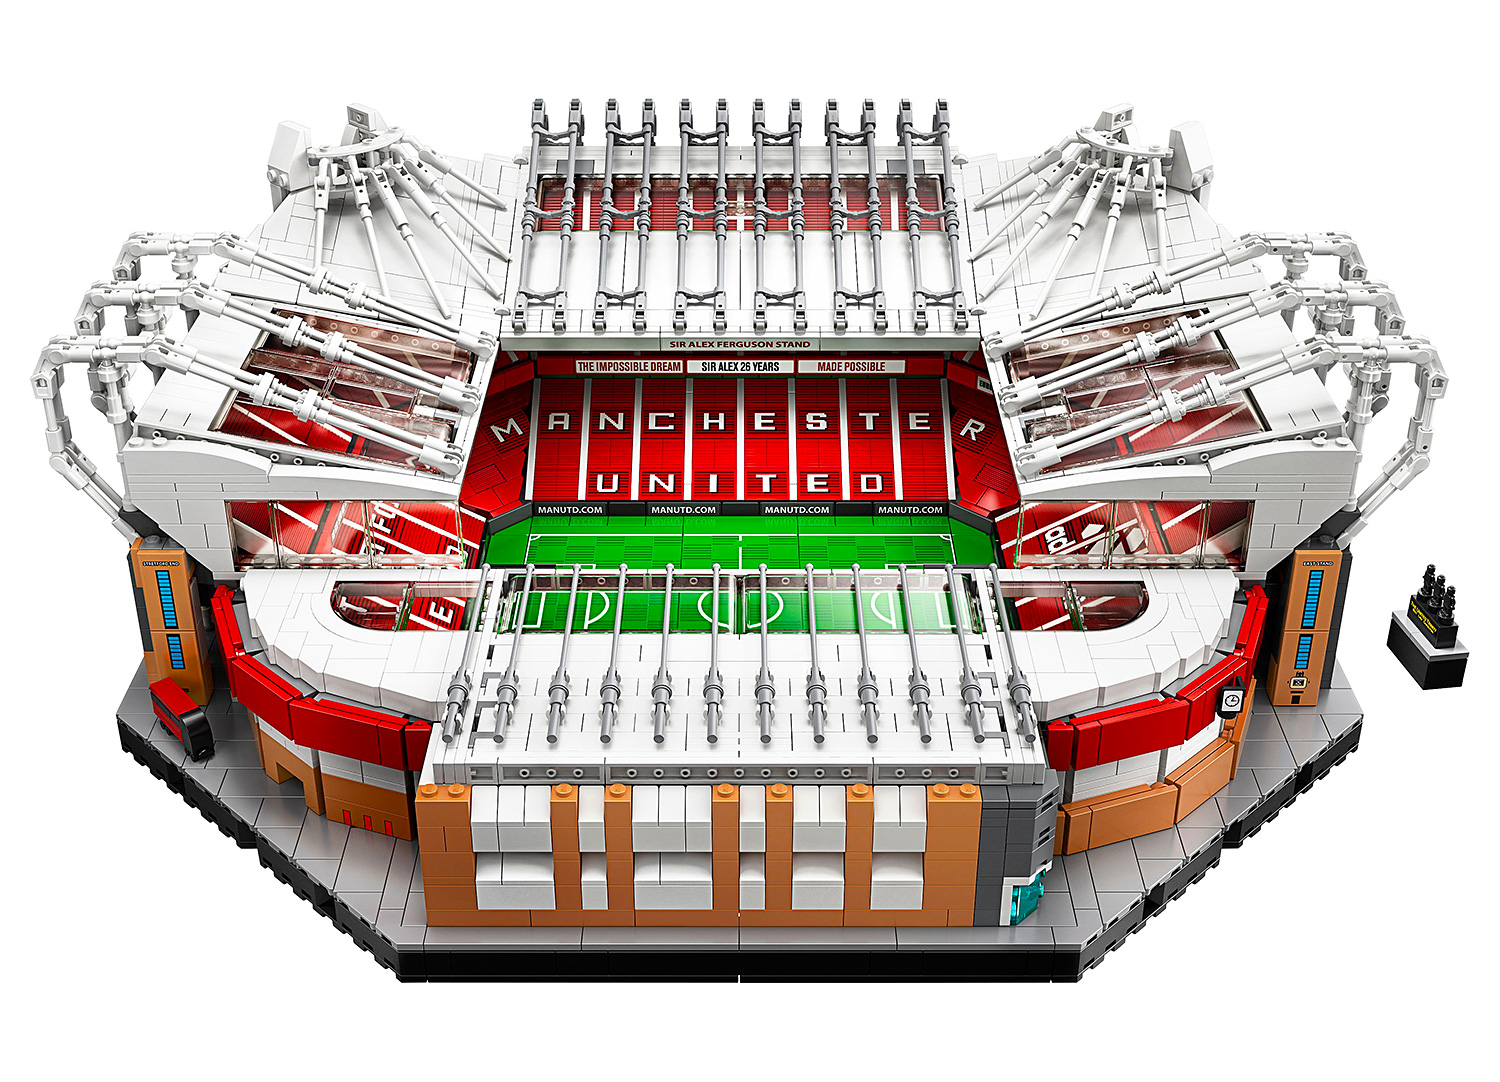 Lego Celebrates Manchester United with the Old Trafford Stadium Set at werd.com